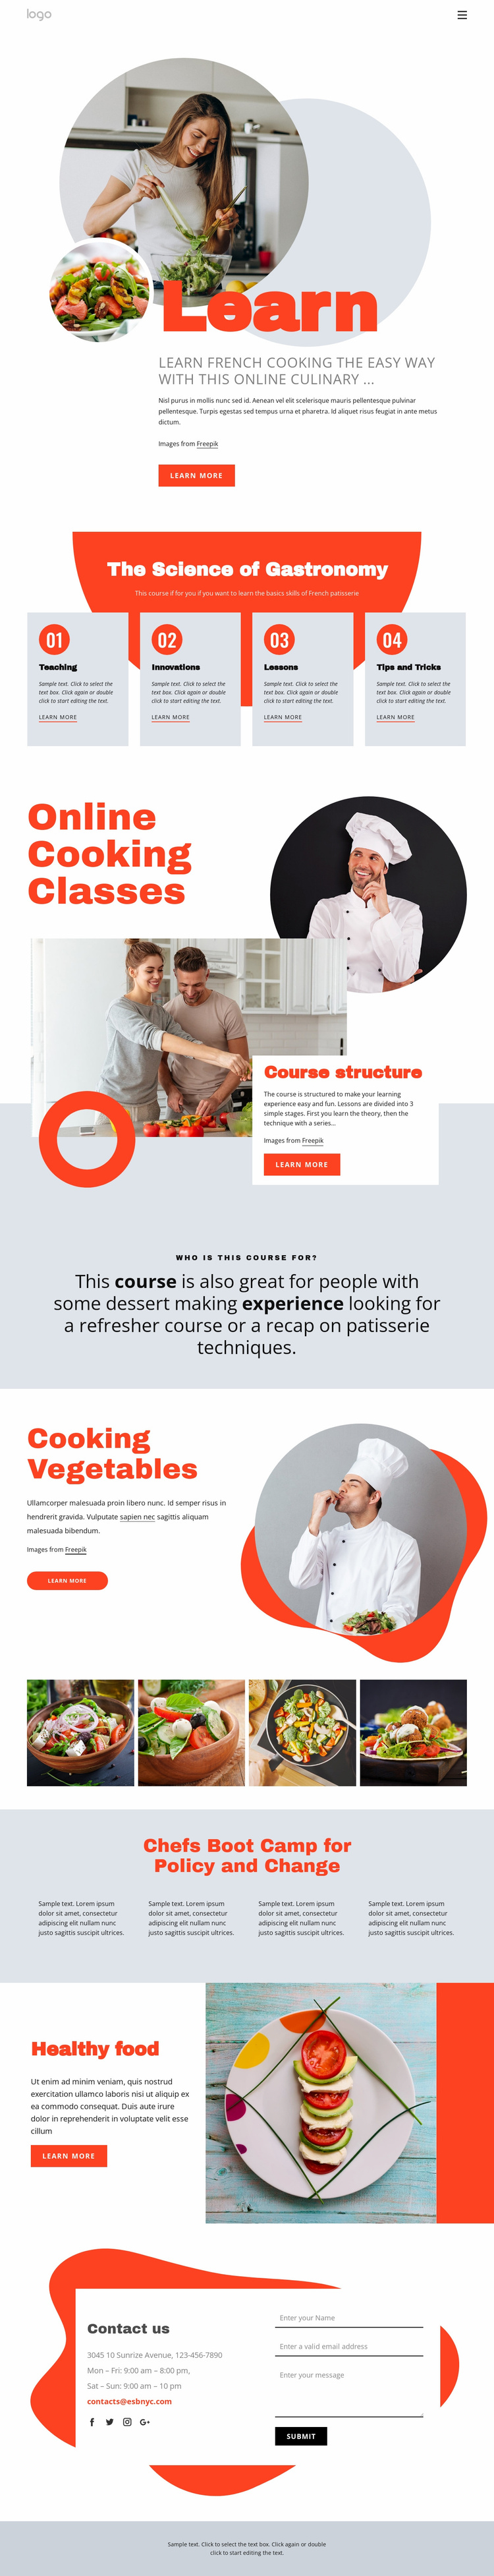 Learn cooking the easy way Landing Page